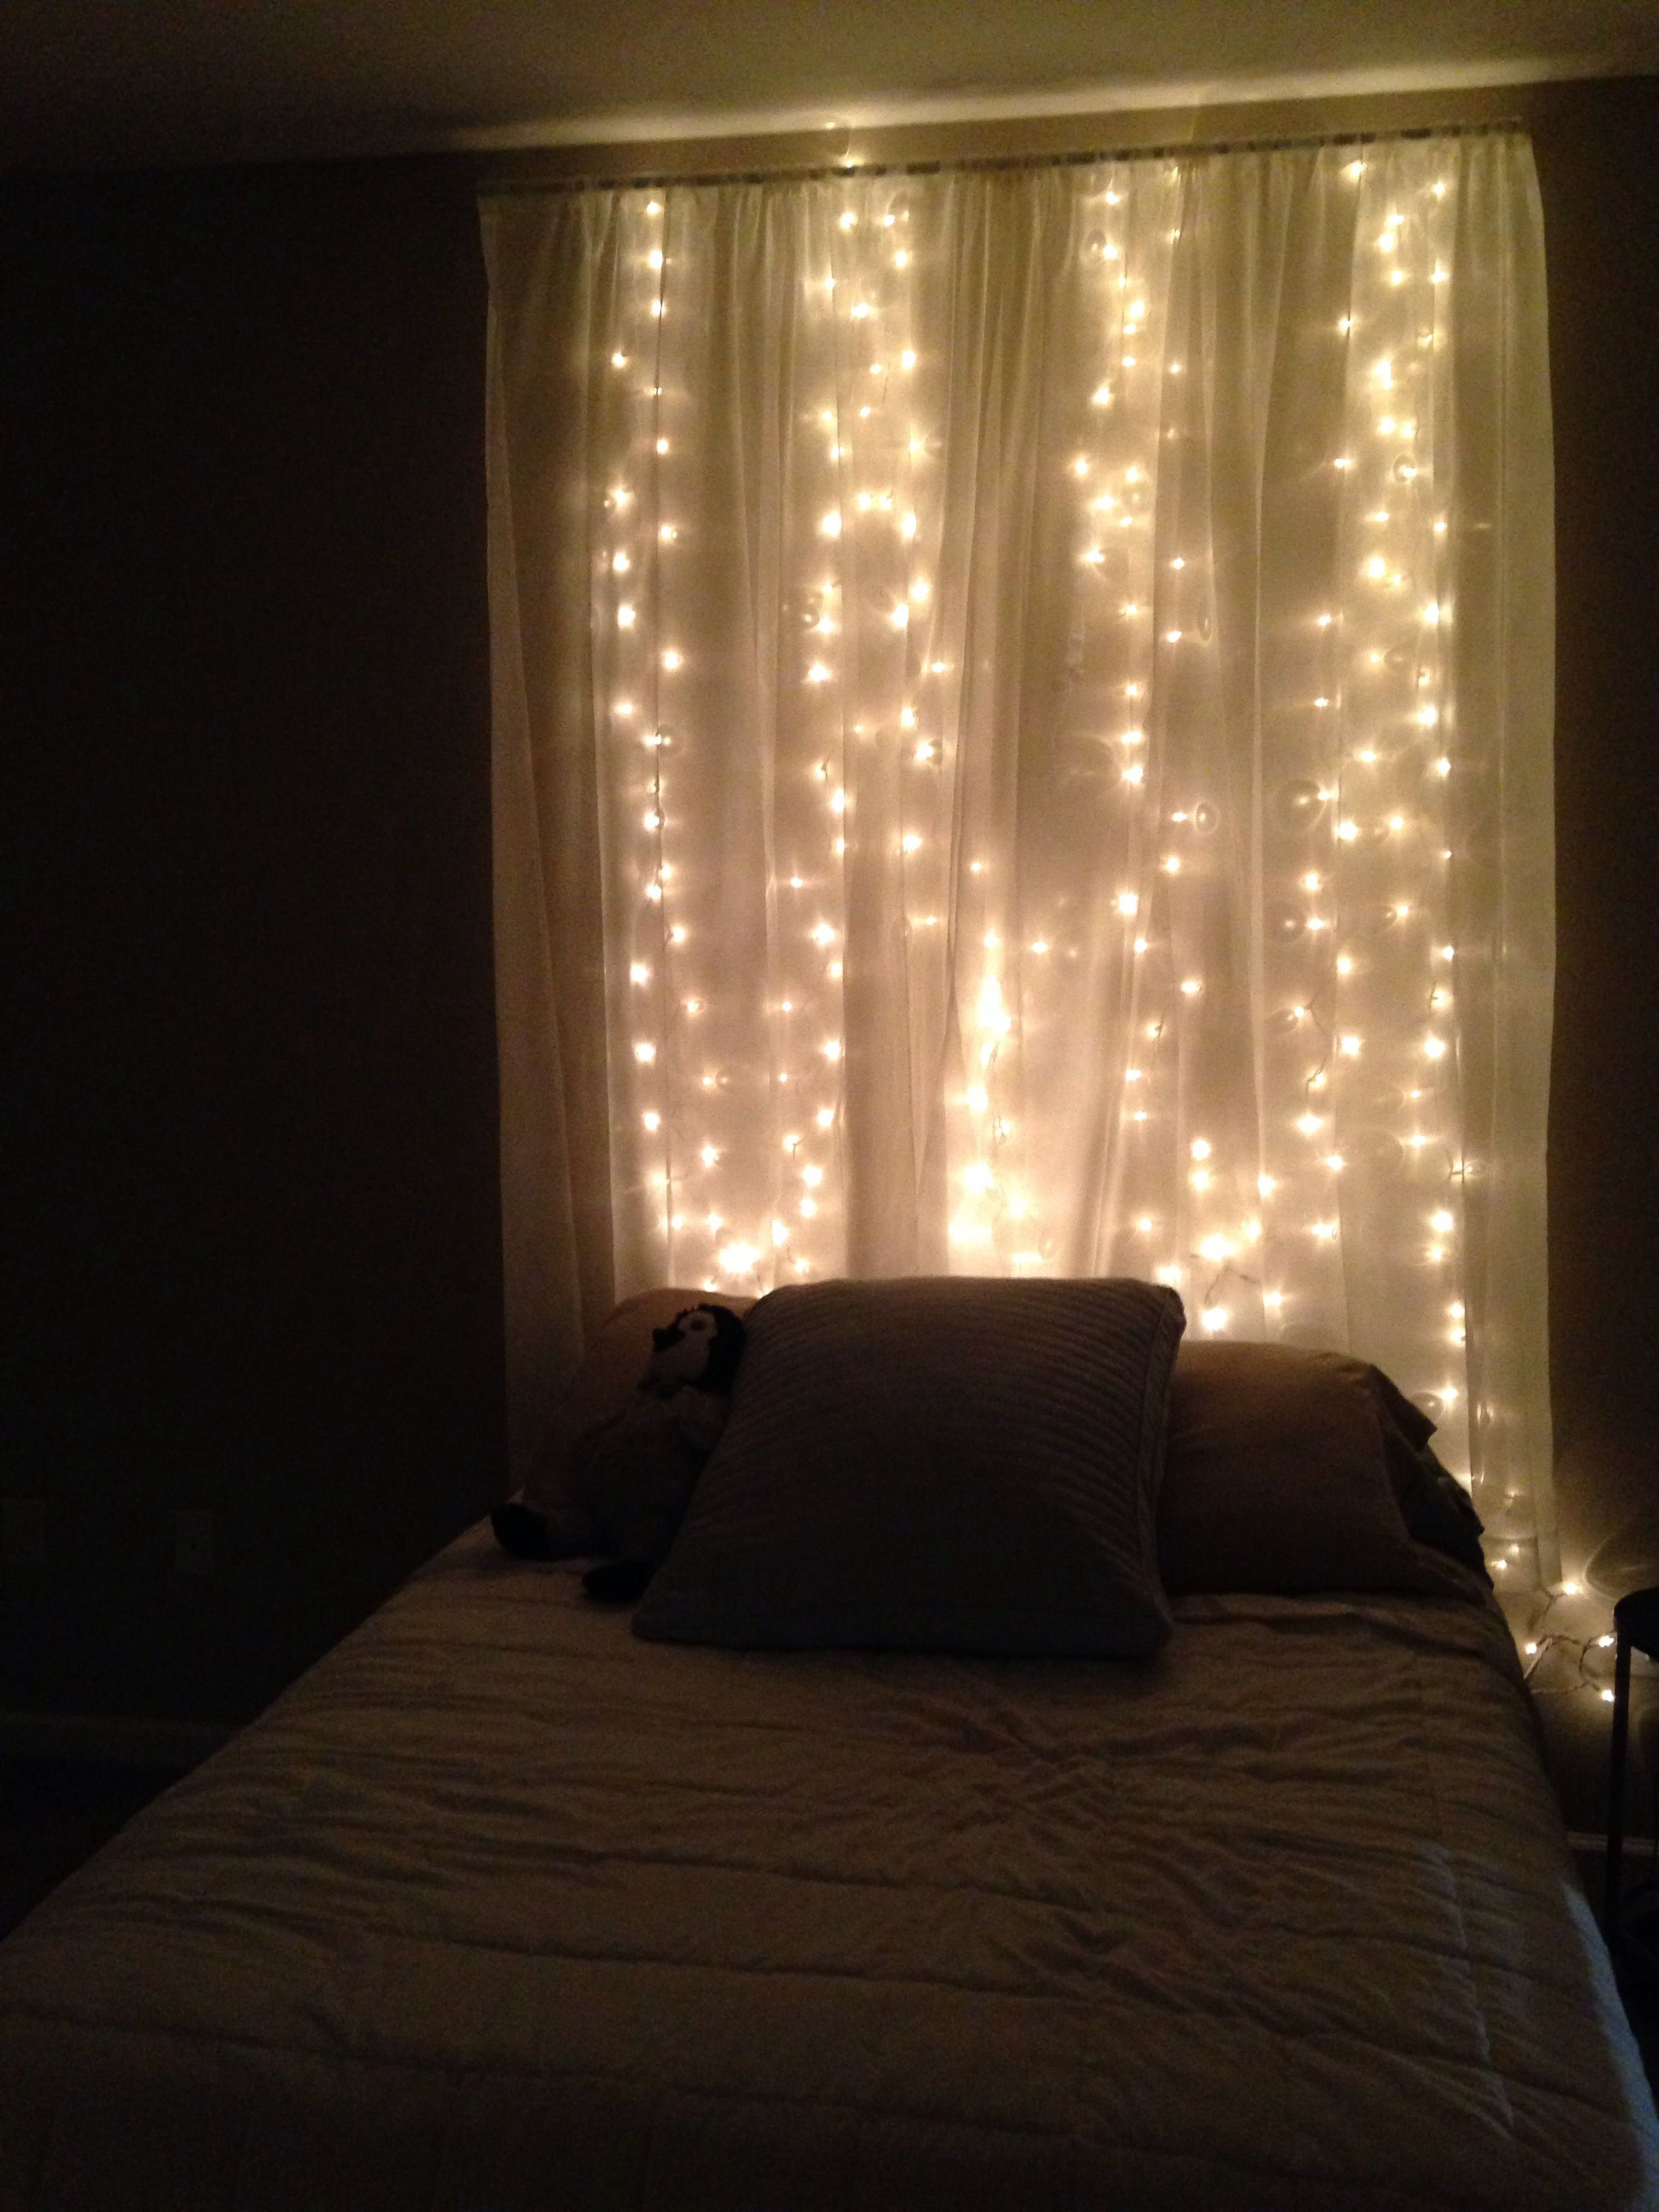 String Lights For Headboard : String lights behind sheer curtain headboard new bedroom ideas Pinterest Curtain ...